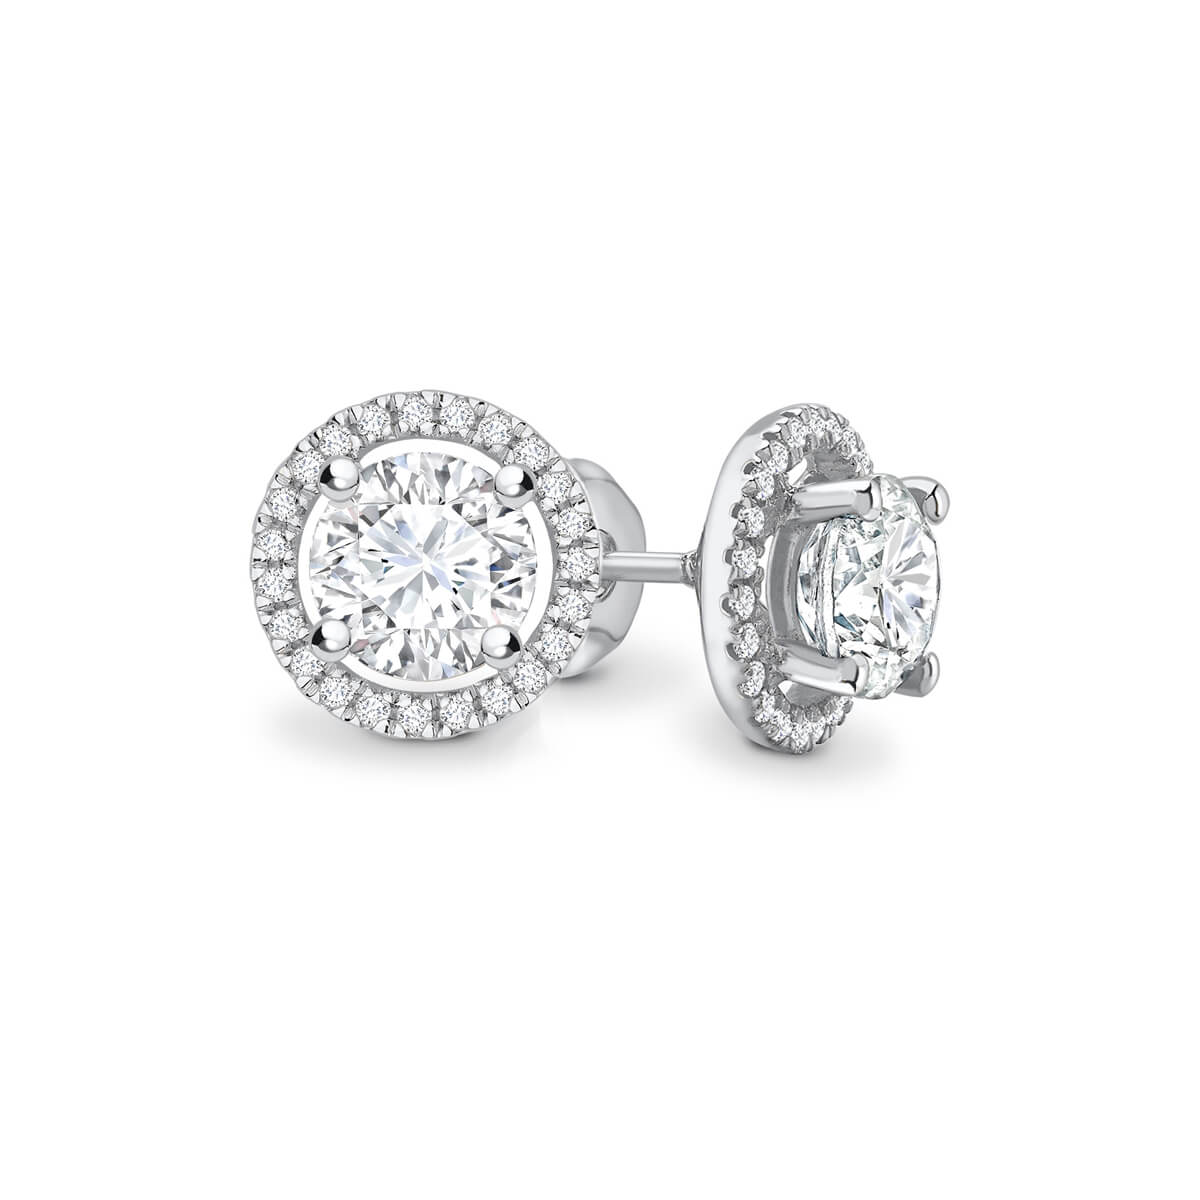 Lily Arkwright Earrings VOGUE - Moissanite & Diamond Platinum Gold Halo Earrings